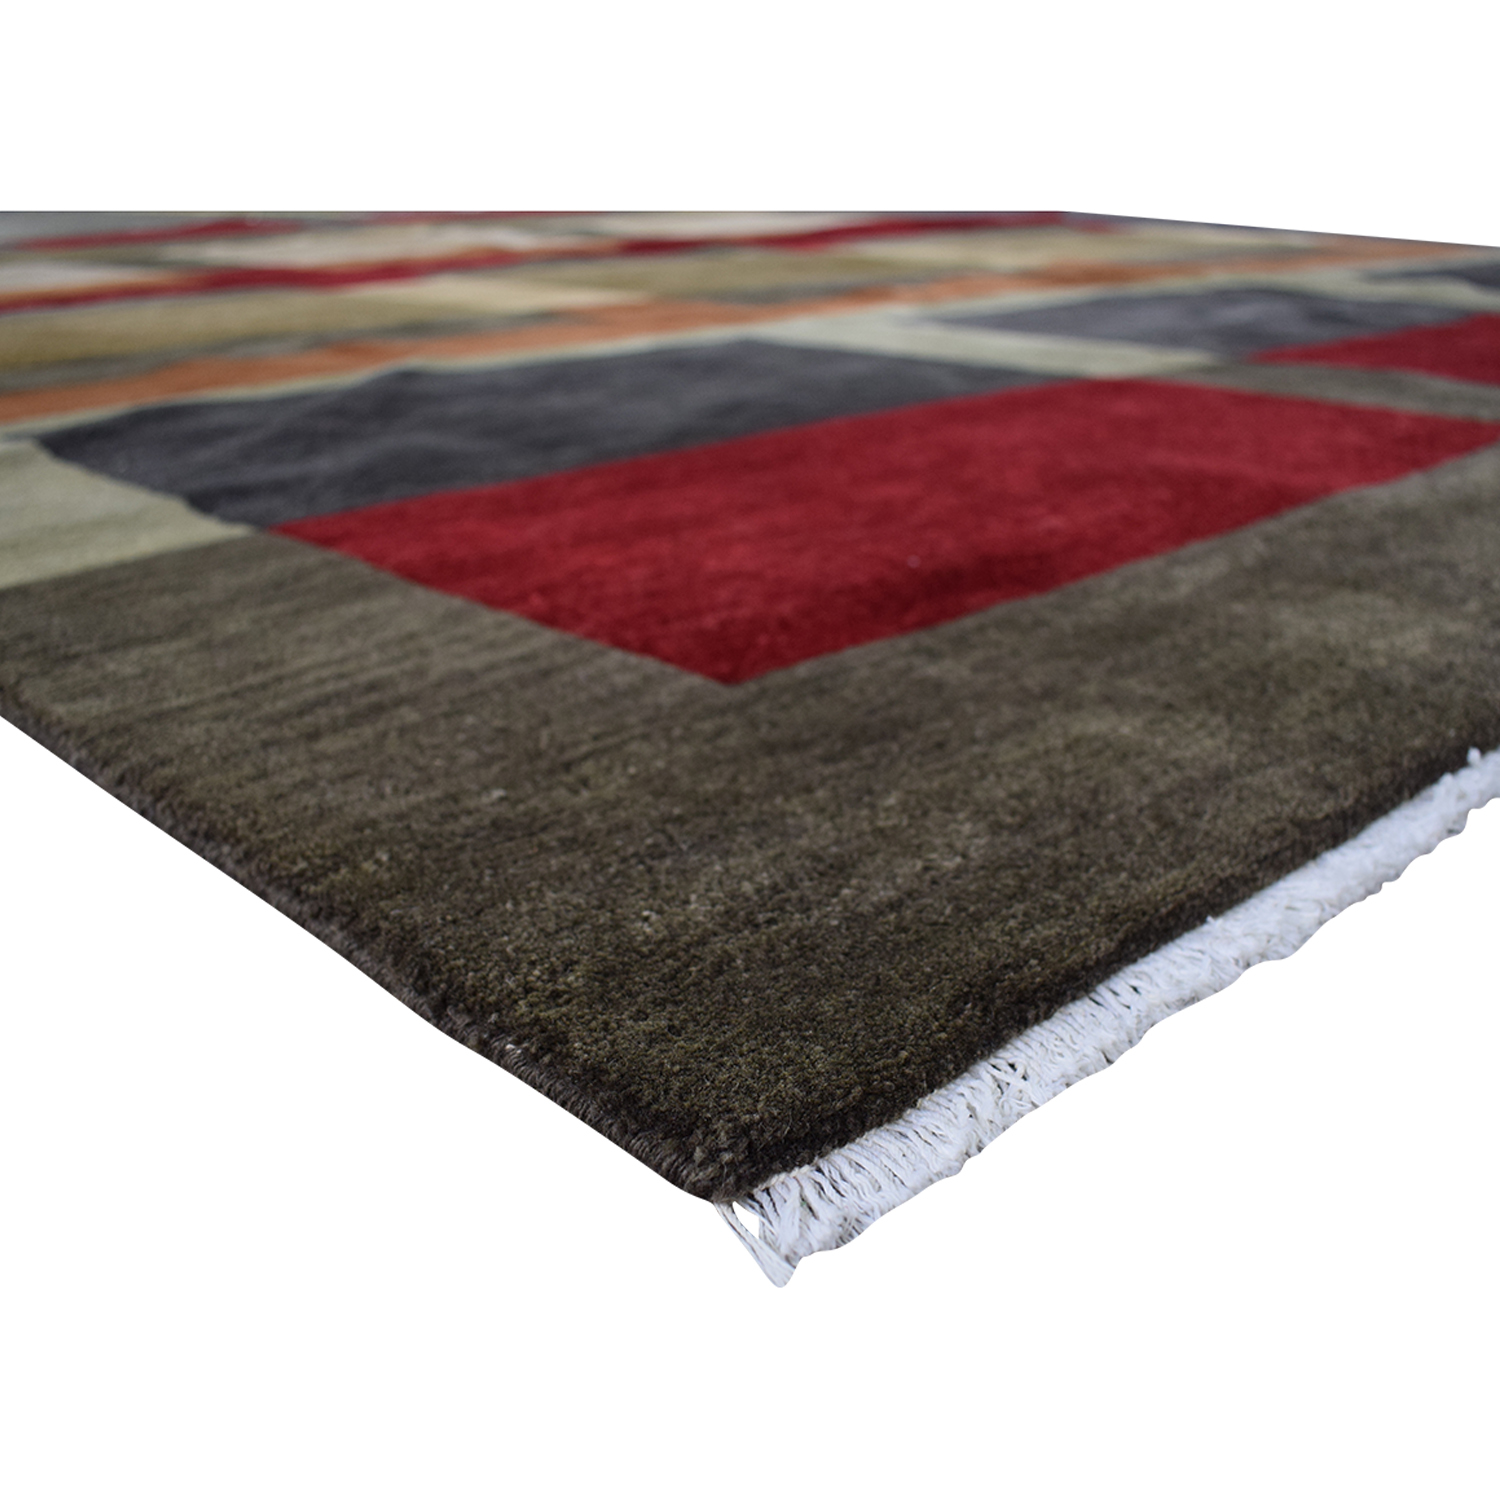 Ethan Allen Intersect Area Rug / Rugs